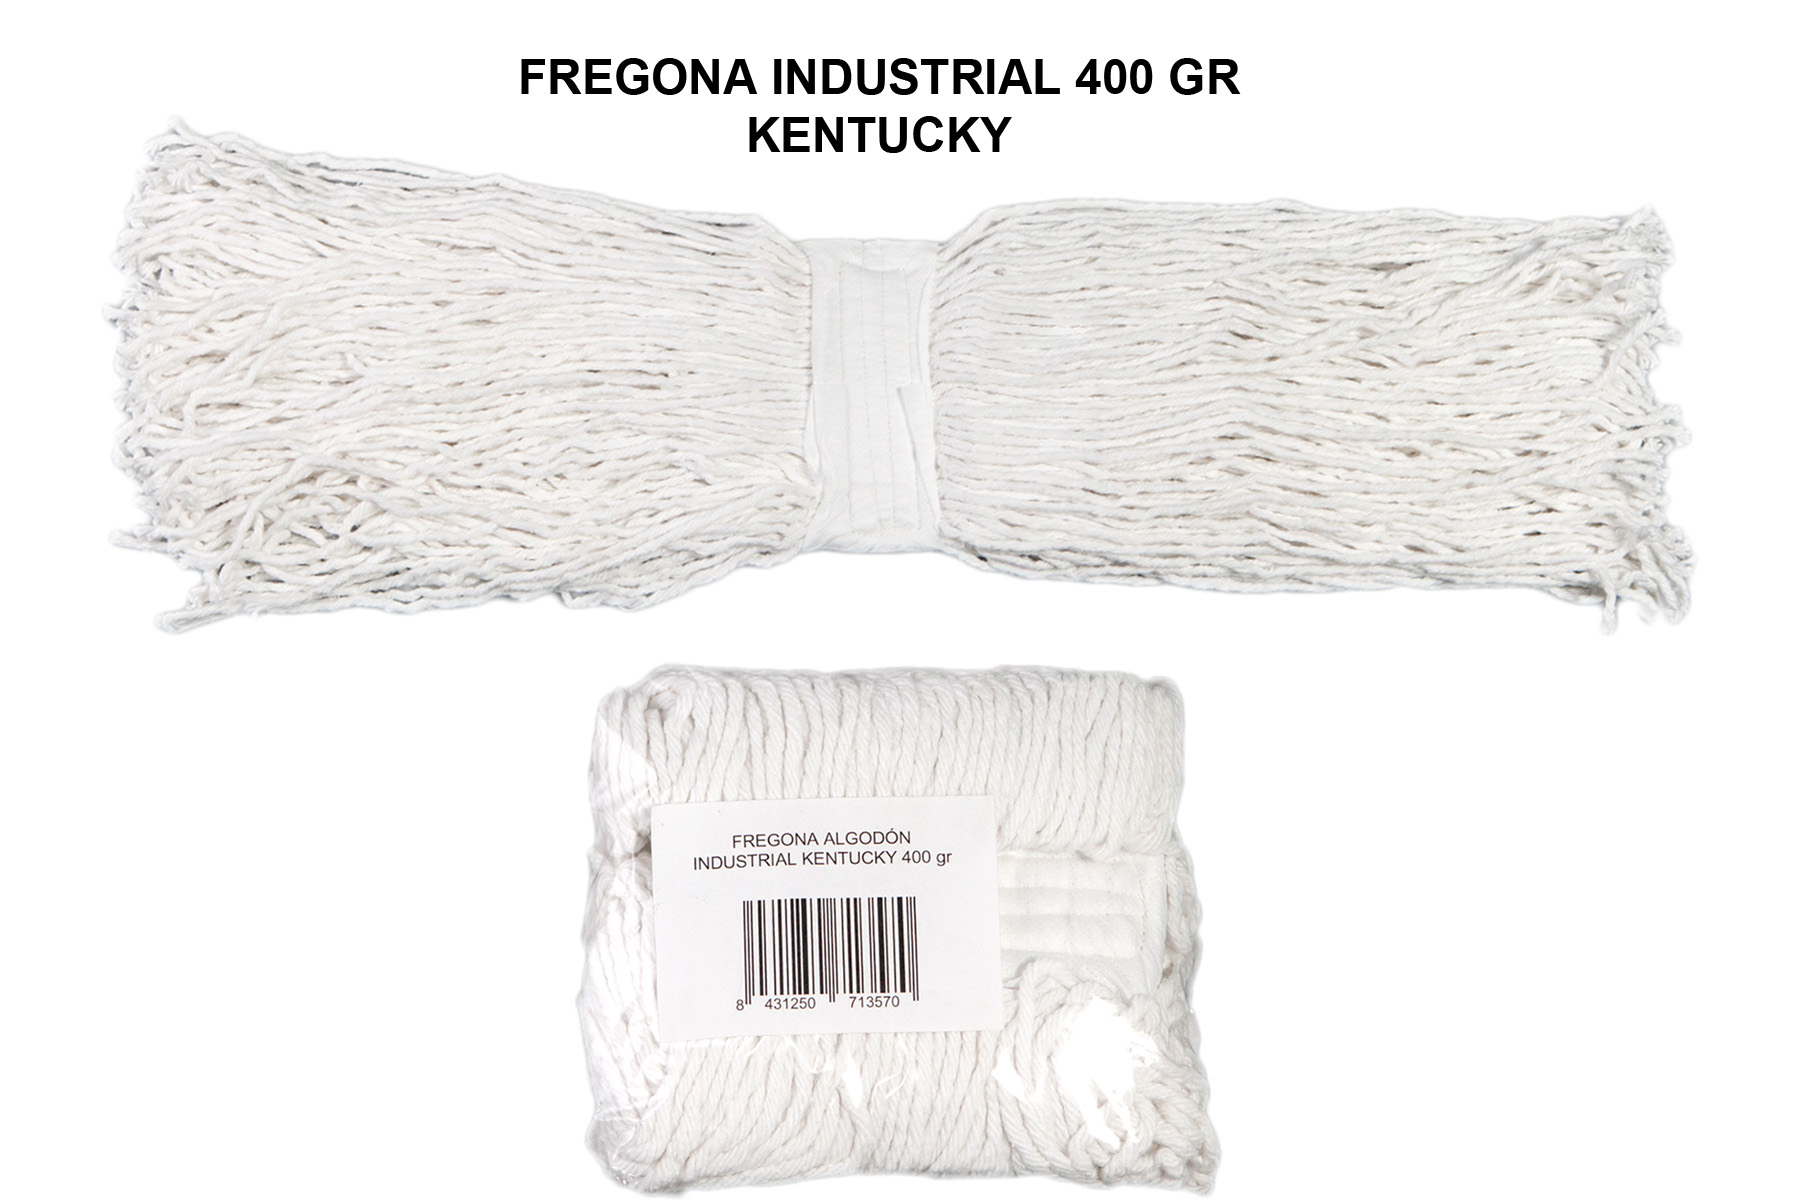 FREGONA INDUSTRIAL 400 GR KENTUCKY